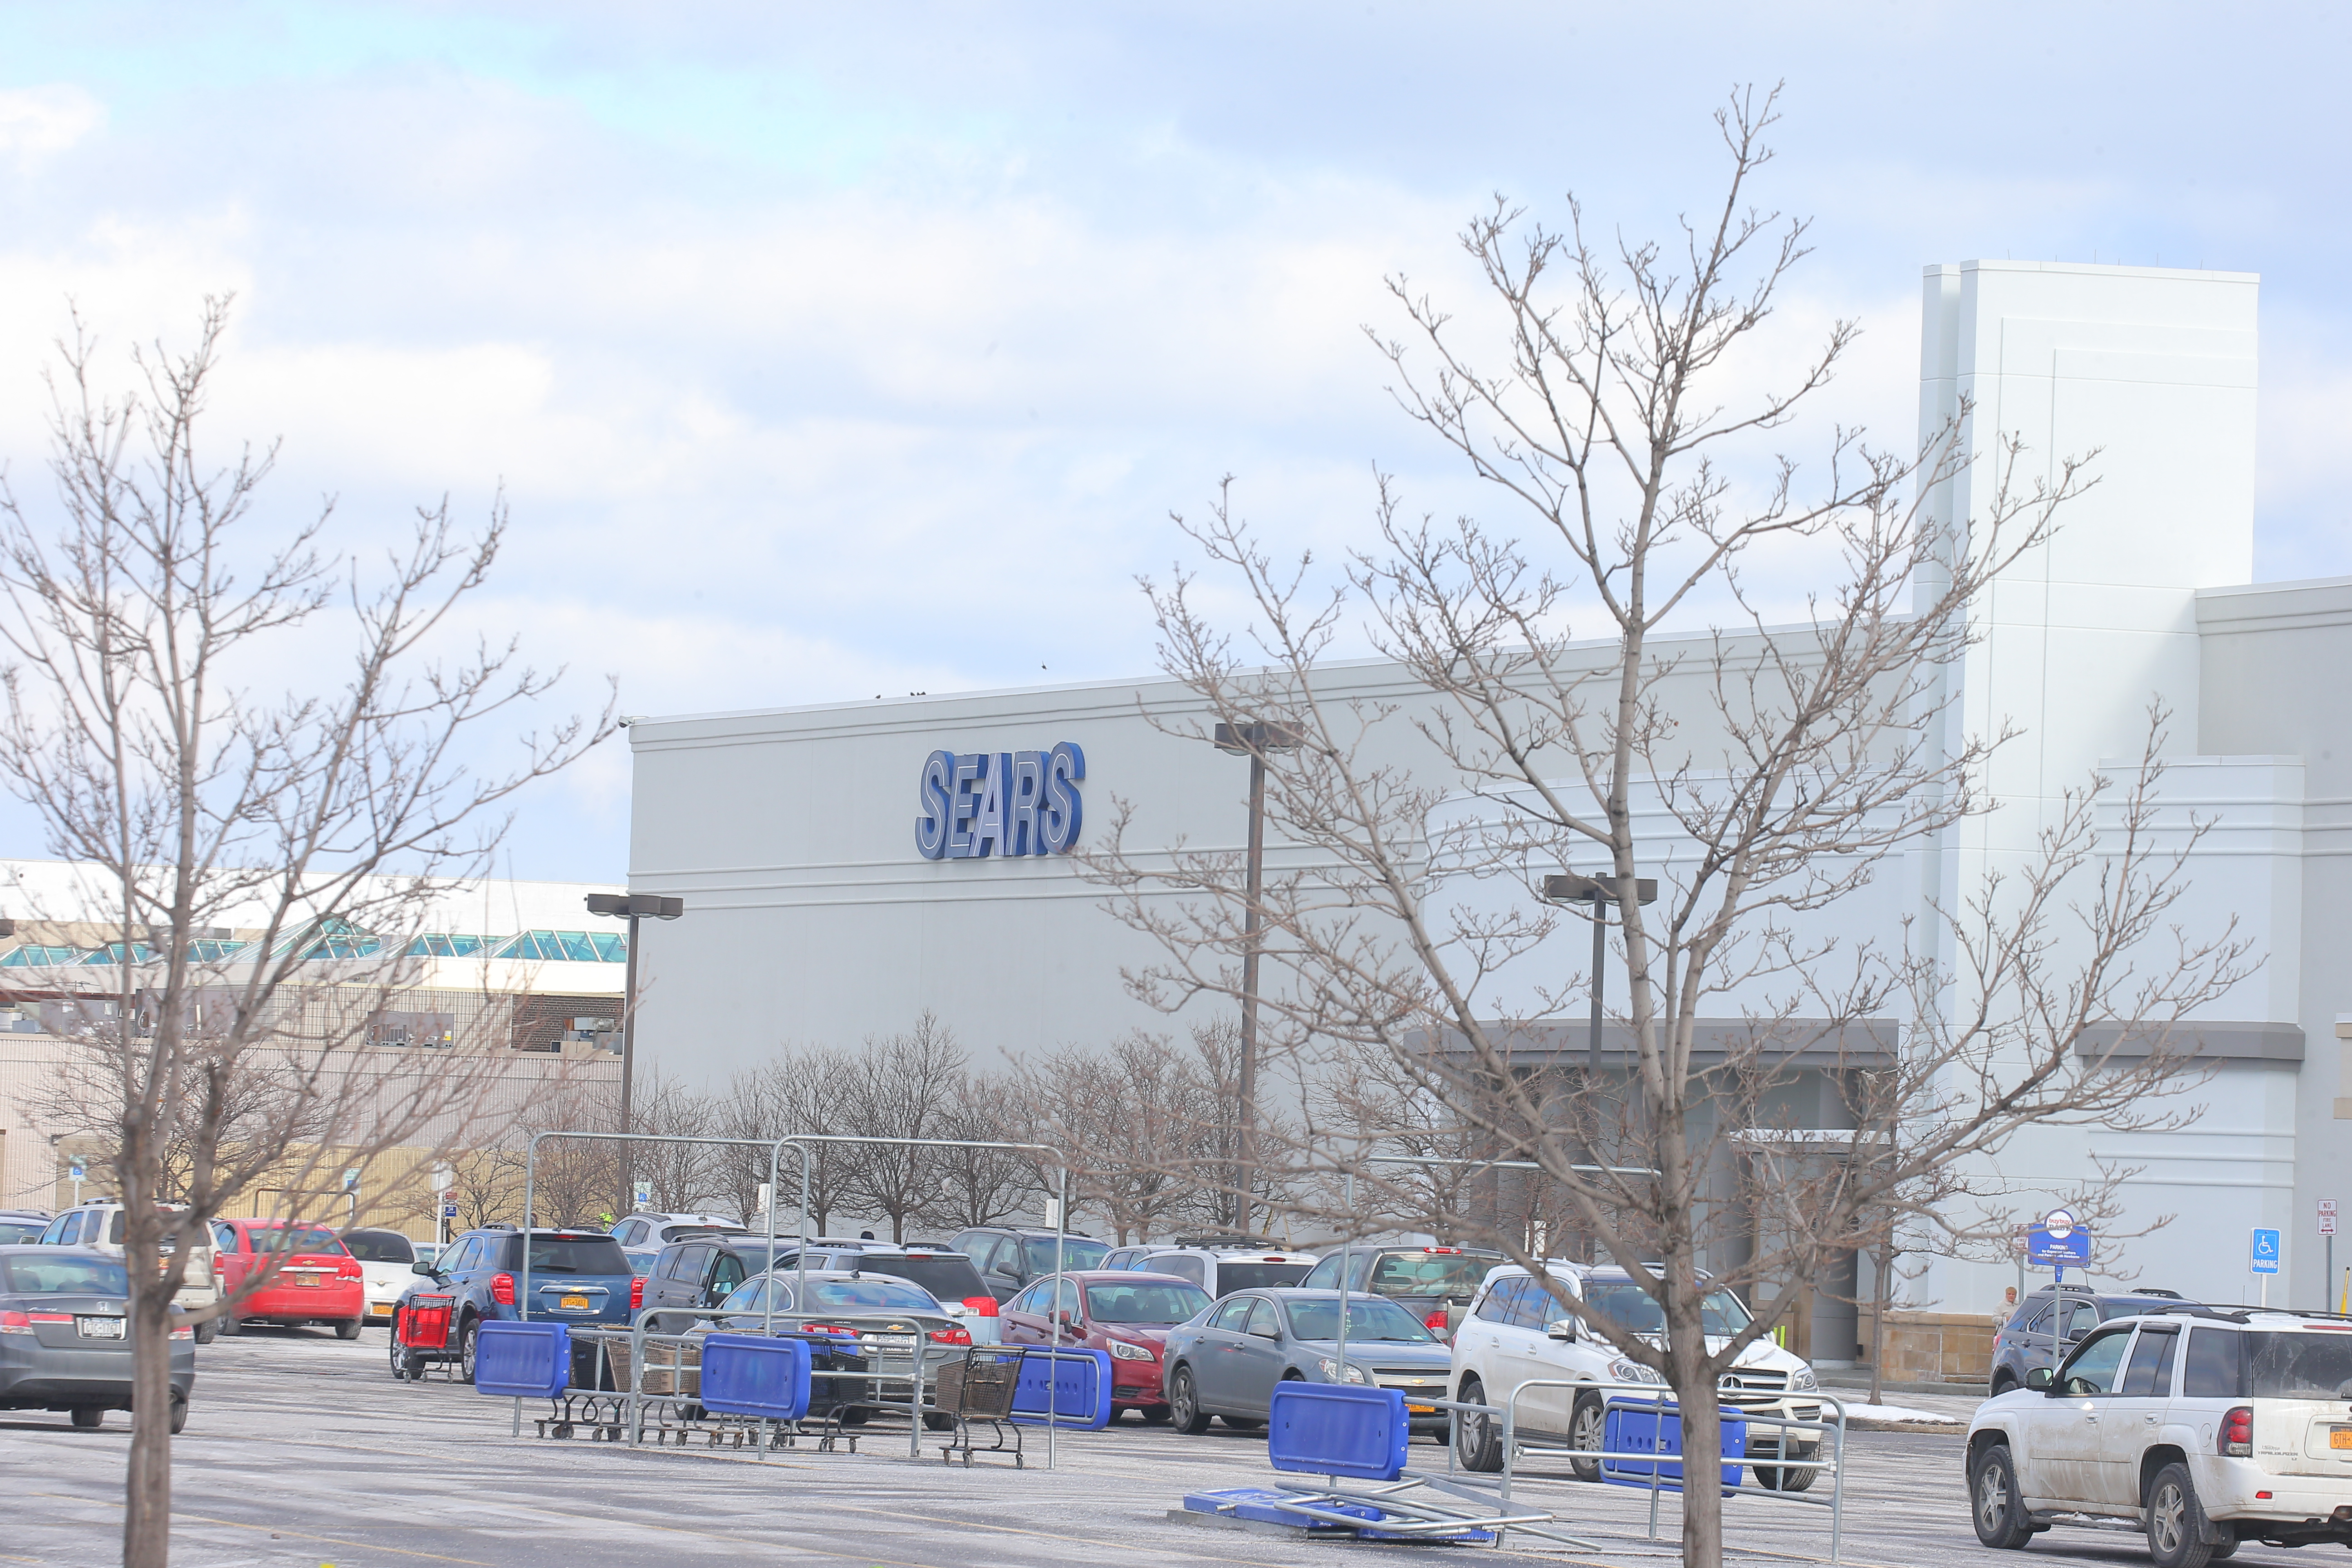 Sears  is closing its store at the Boulevard Mall on Niagara Falls Boulevard and Maple Road, in Amherst, N.Y.  The mall's owner, Forest City, had a $92.4 million mortgage payment due on Monday, Feb. 6, 2017. (John Hickey/Buffalo News)